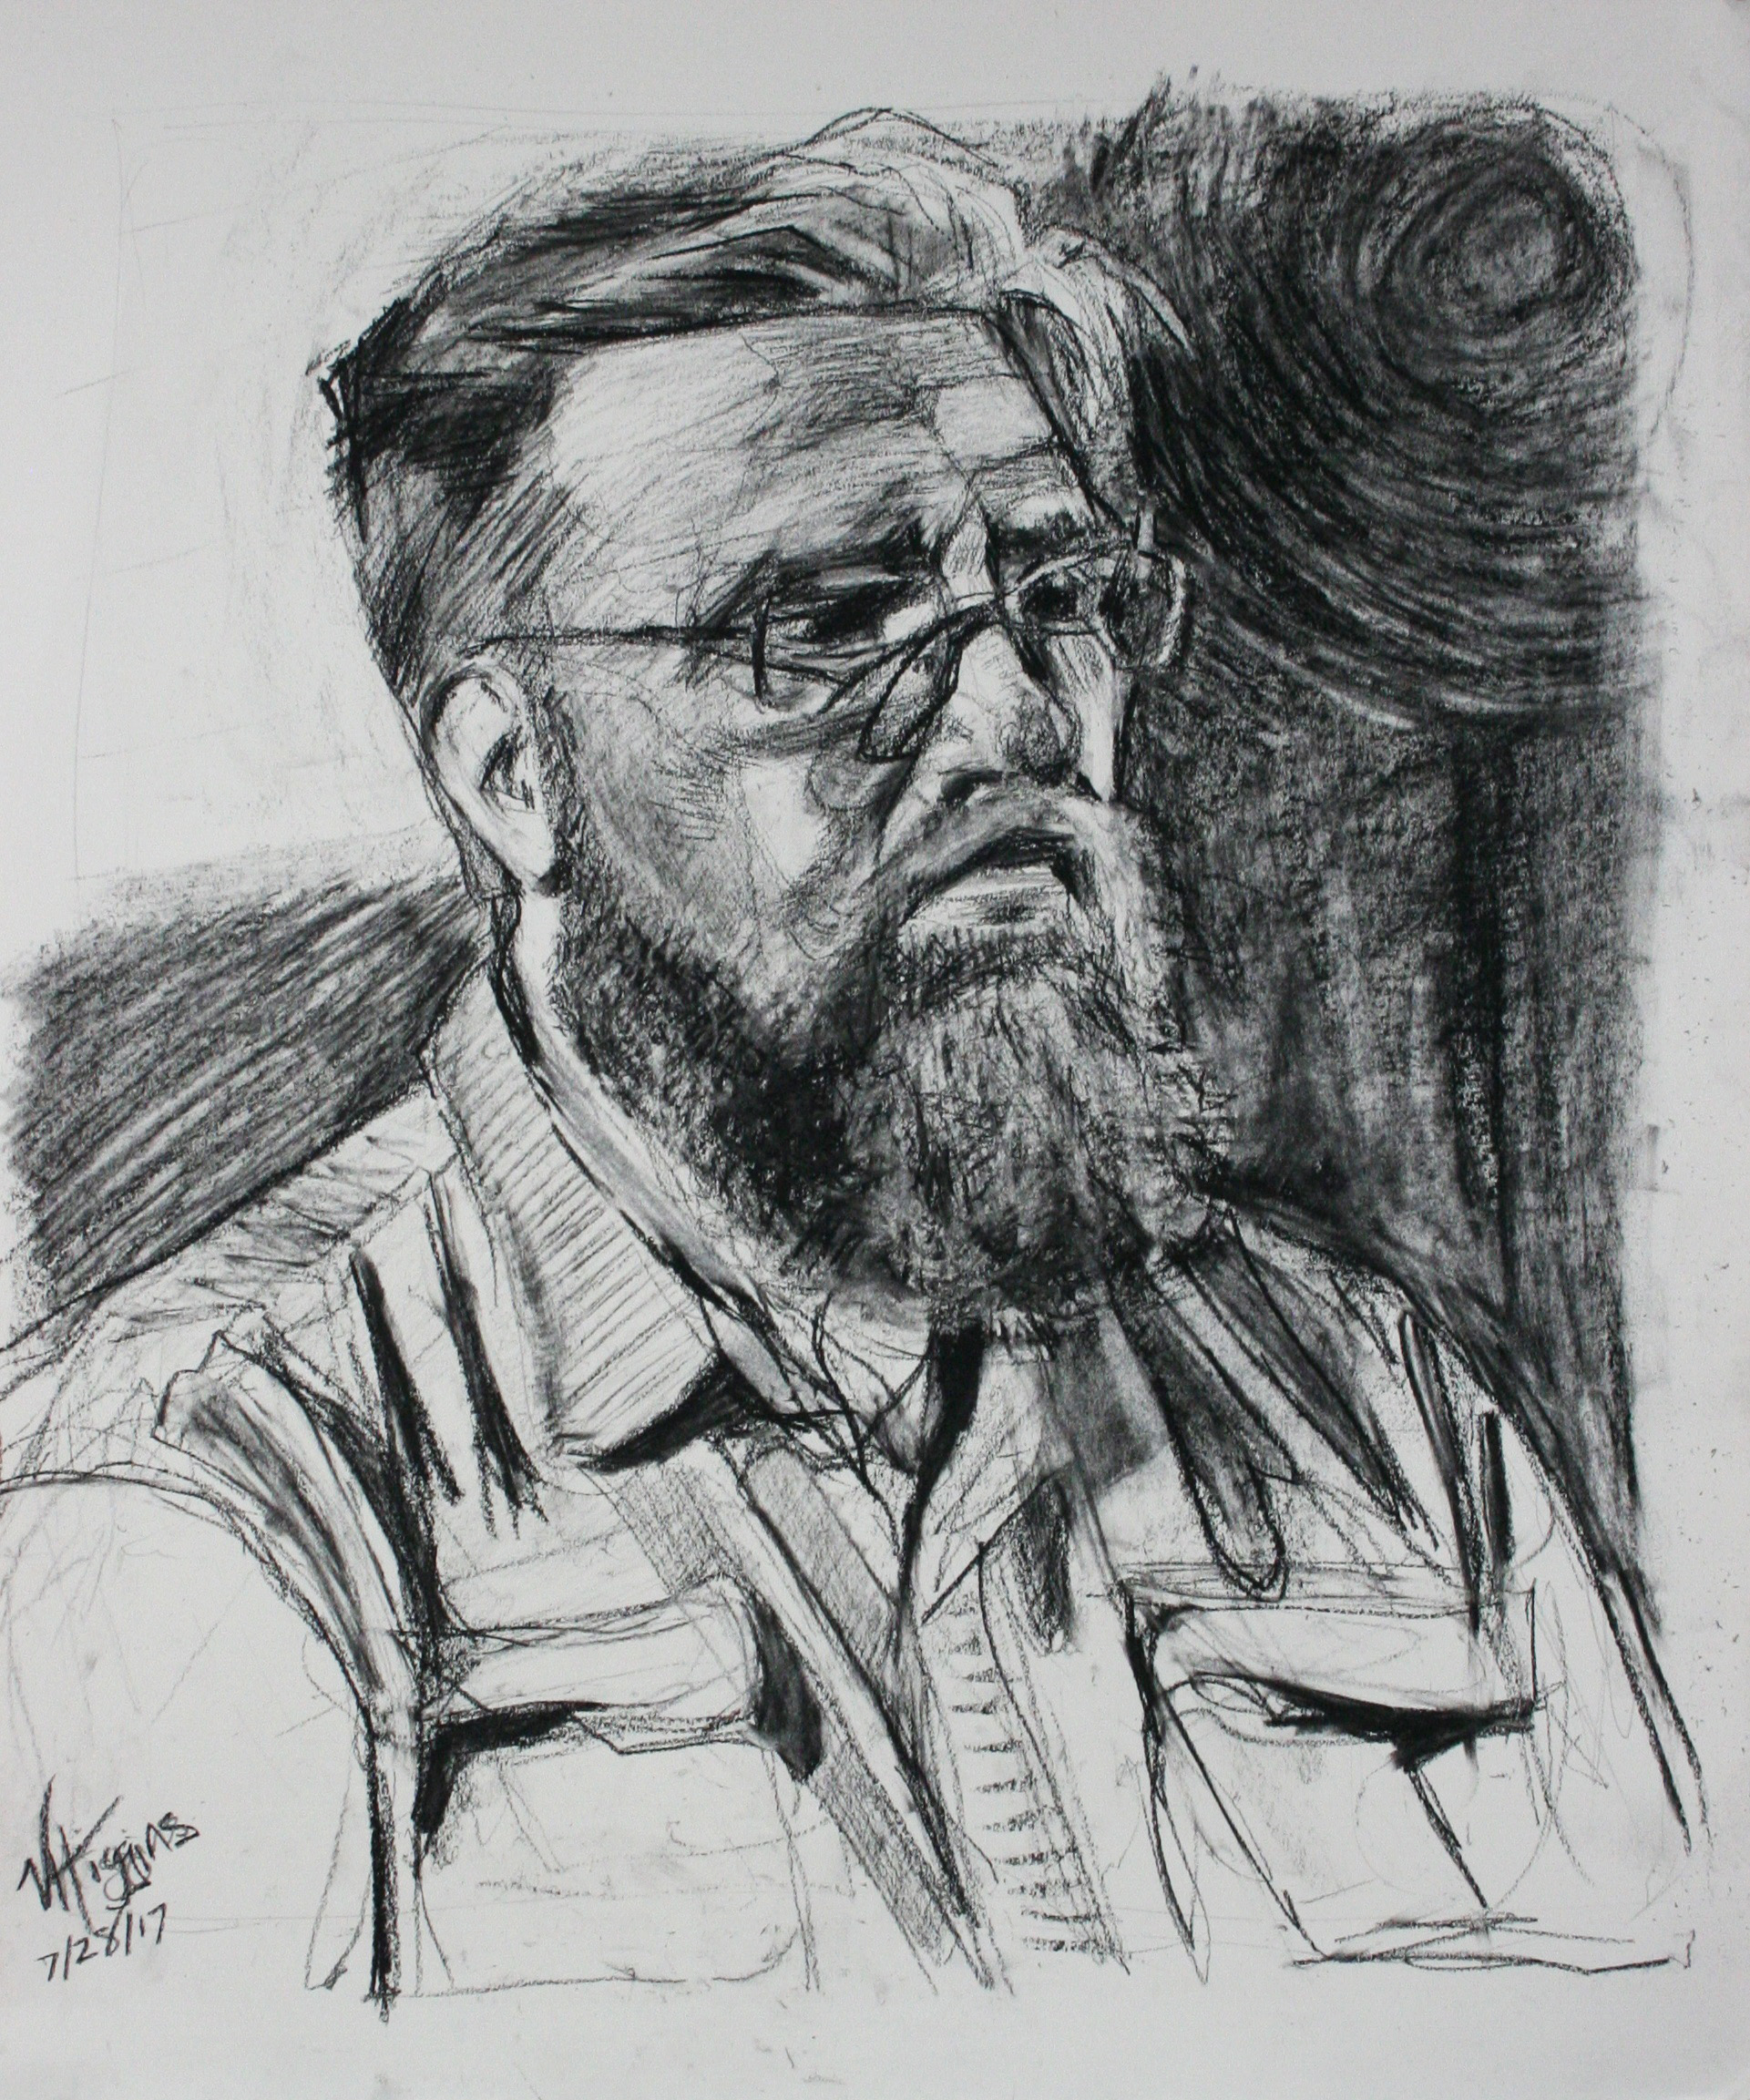 Victoria Higgins did this 3-hour conte drawing.